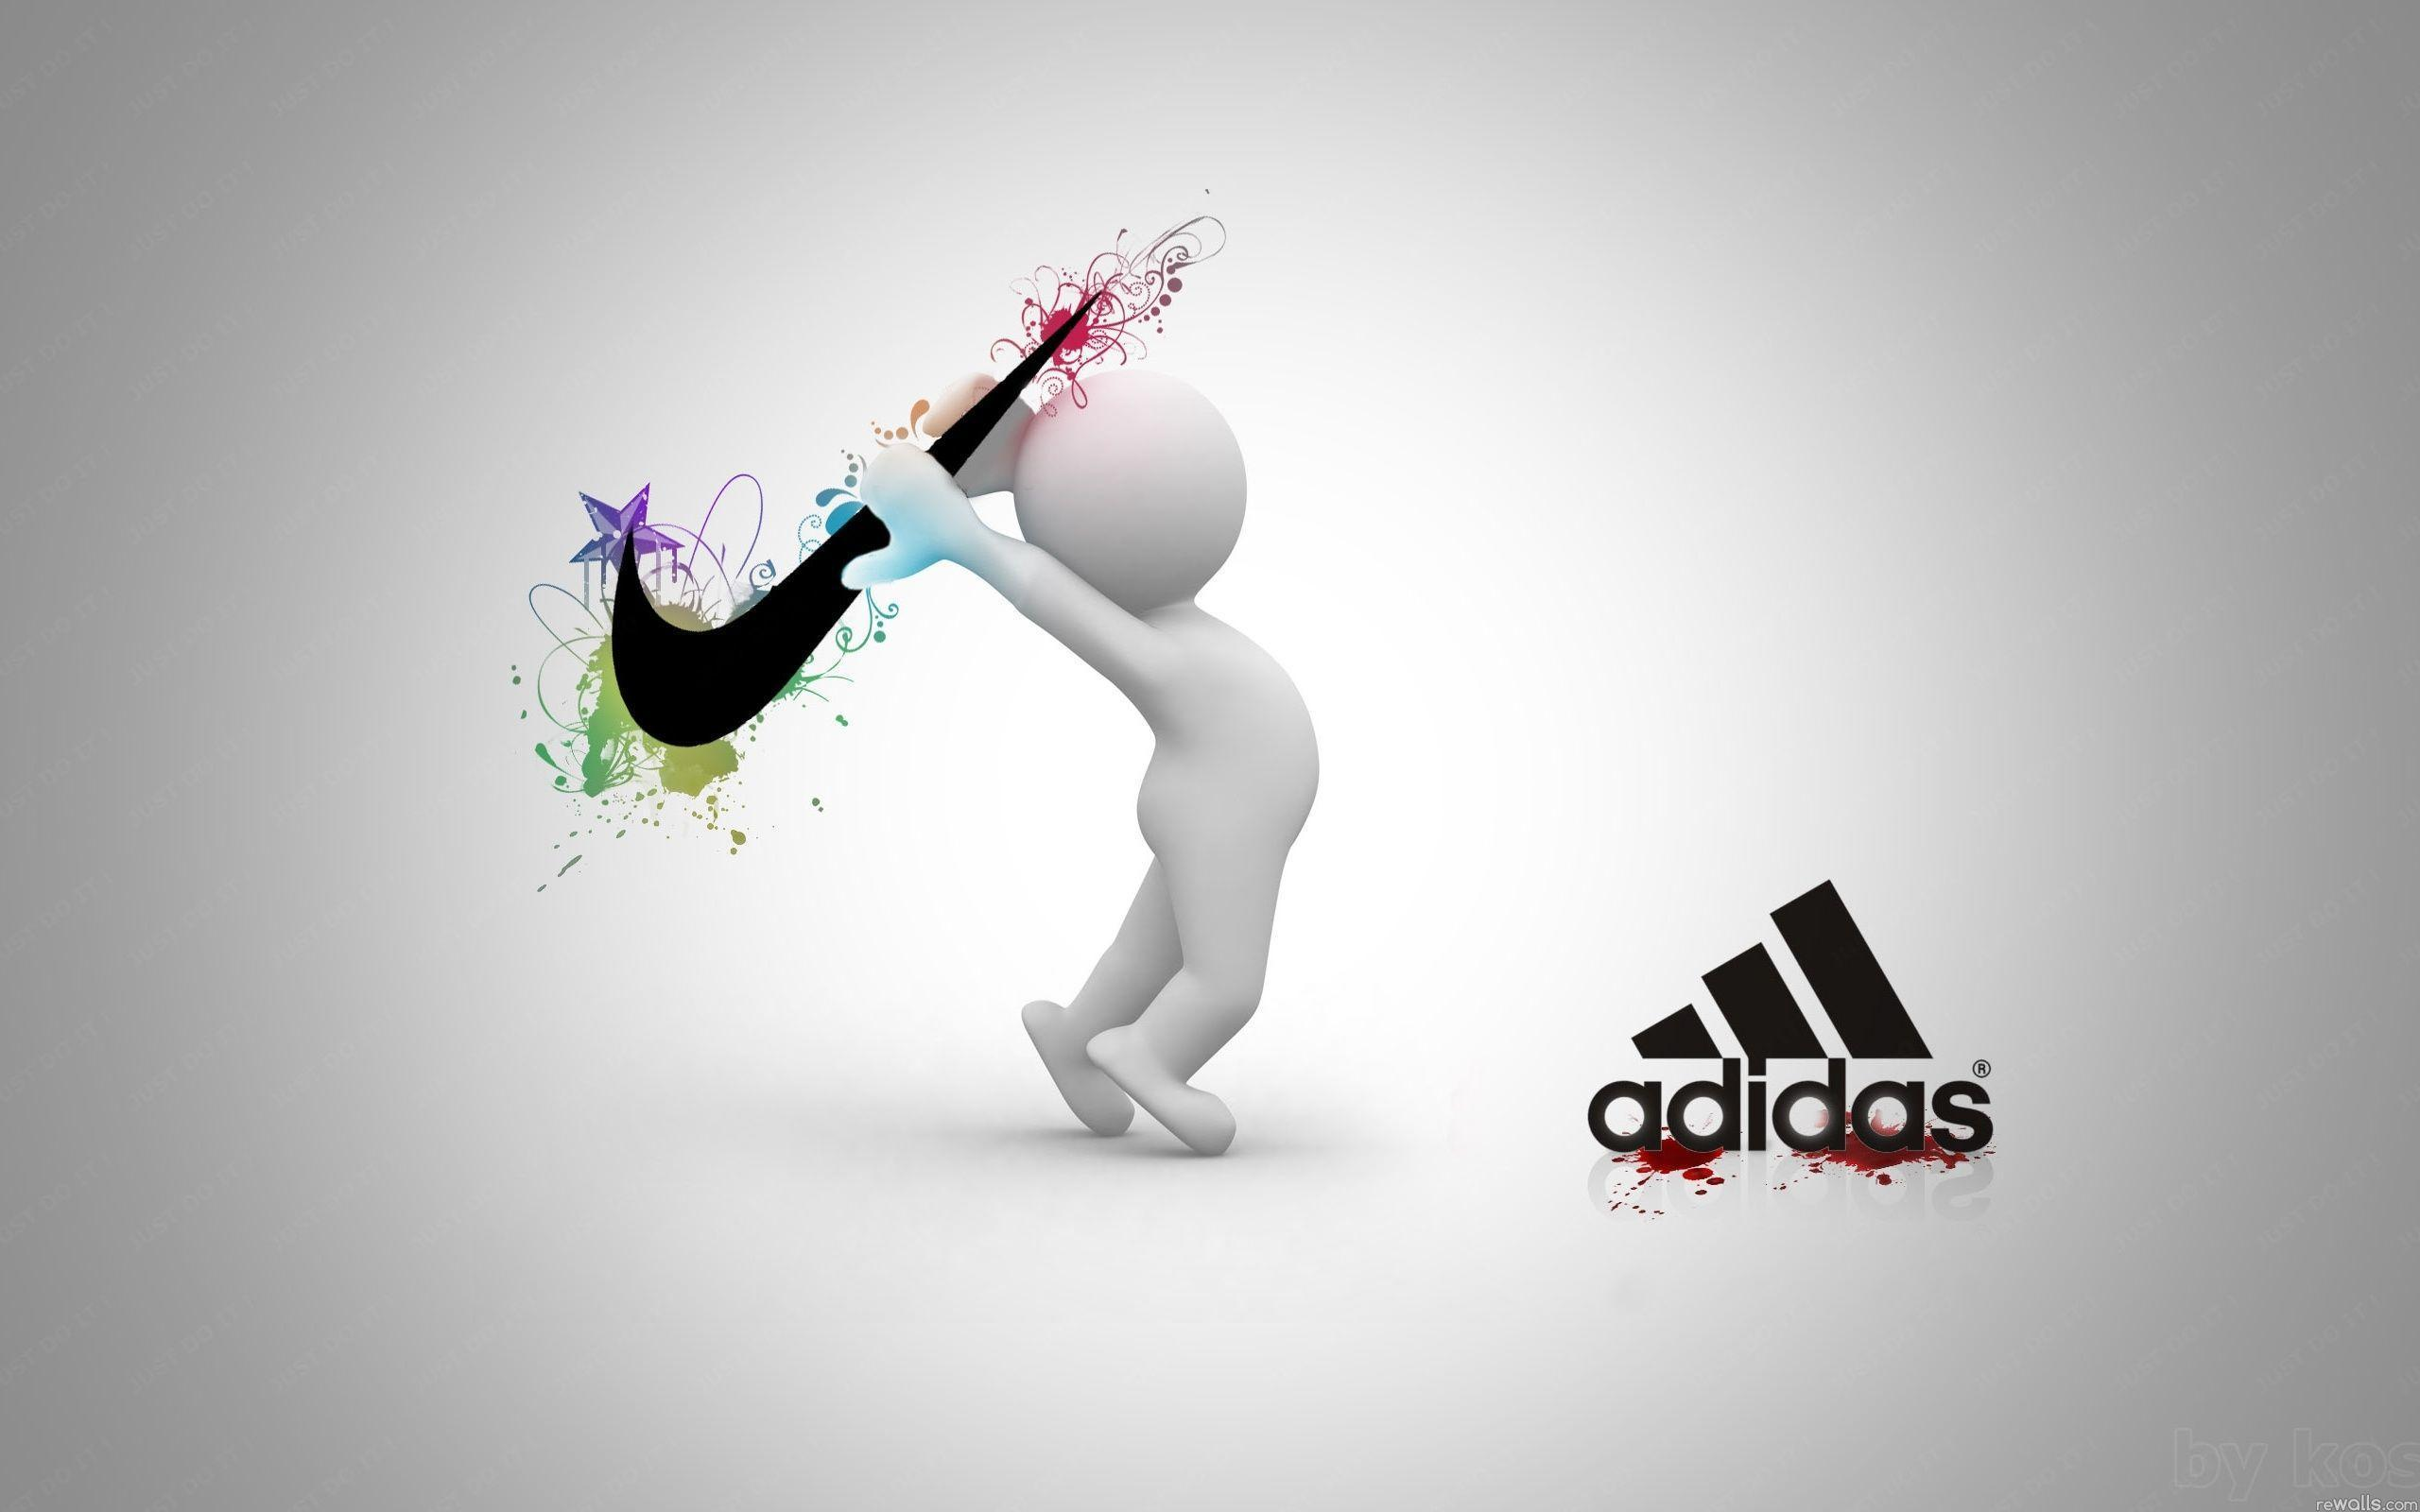 nike logo wallpapers hd 2015 wallpaper cave